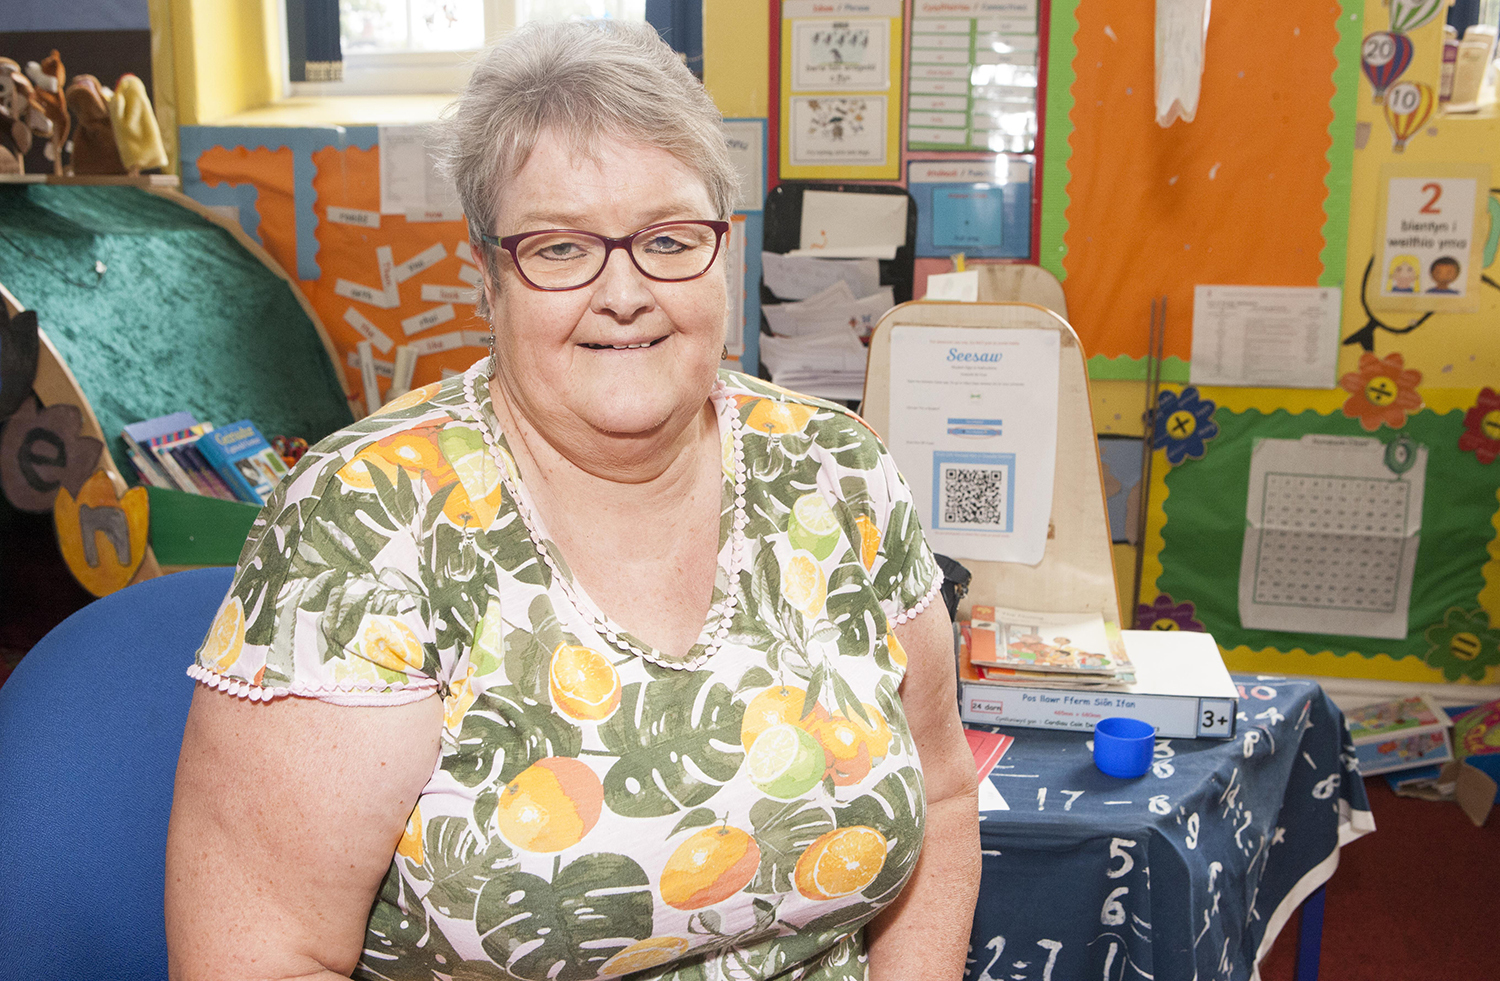 Nerys Jones retired after 31 years